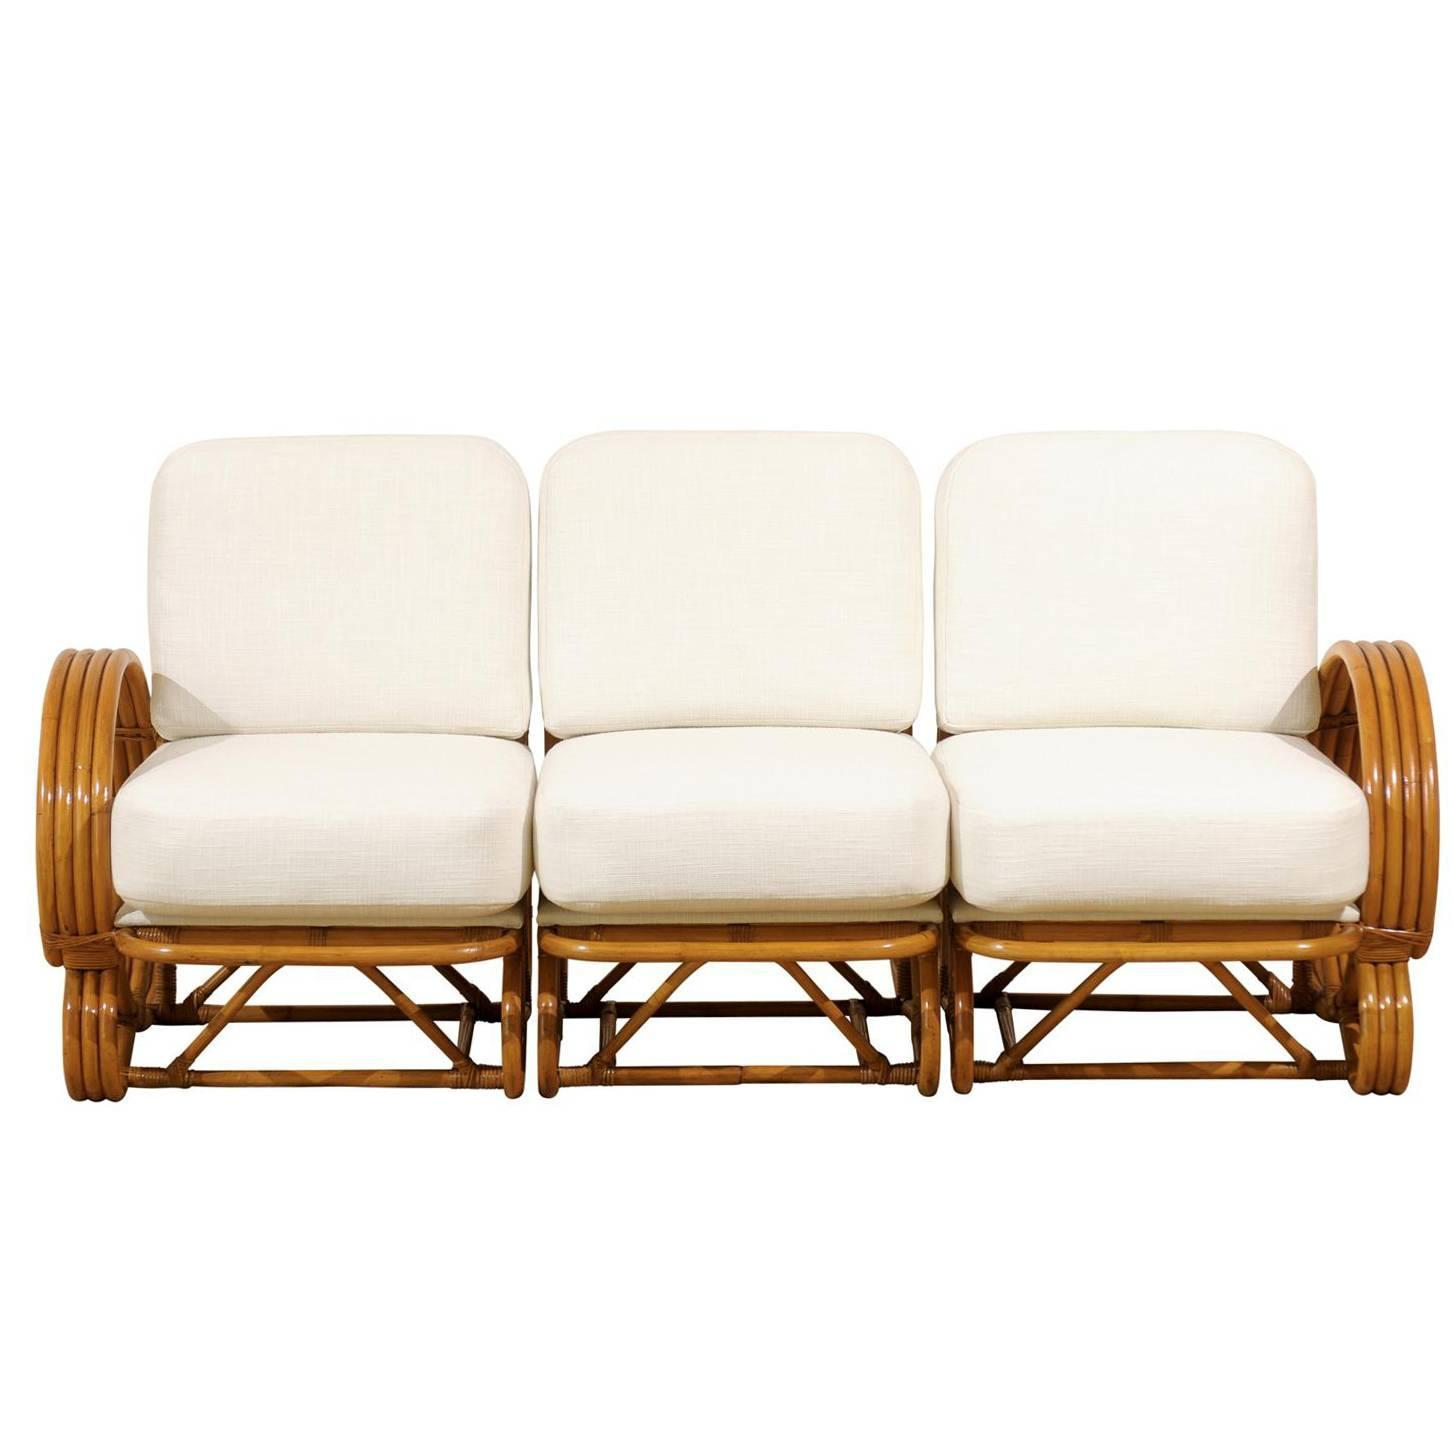 Stellar Restored Vintage Curvilinear Rattan Sofa at 1stdibs : abp042220160534444Customorgz from www.1stdibs.com size 1454 x 1454 jpeg 77kB